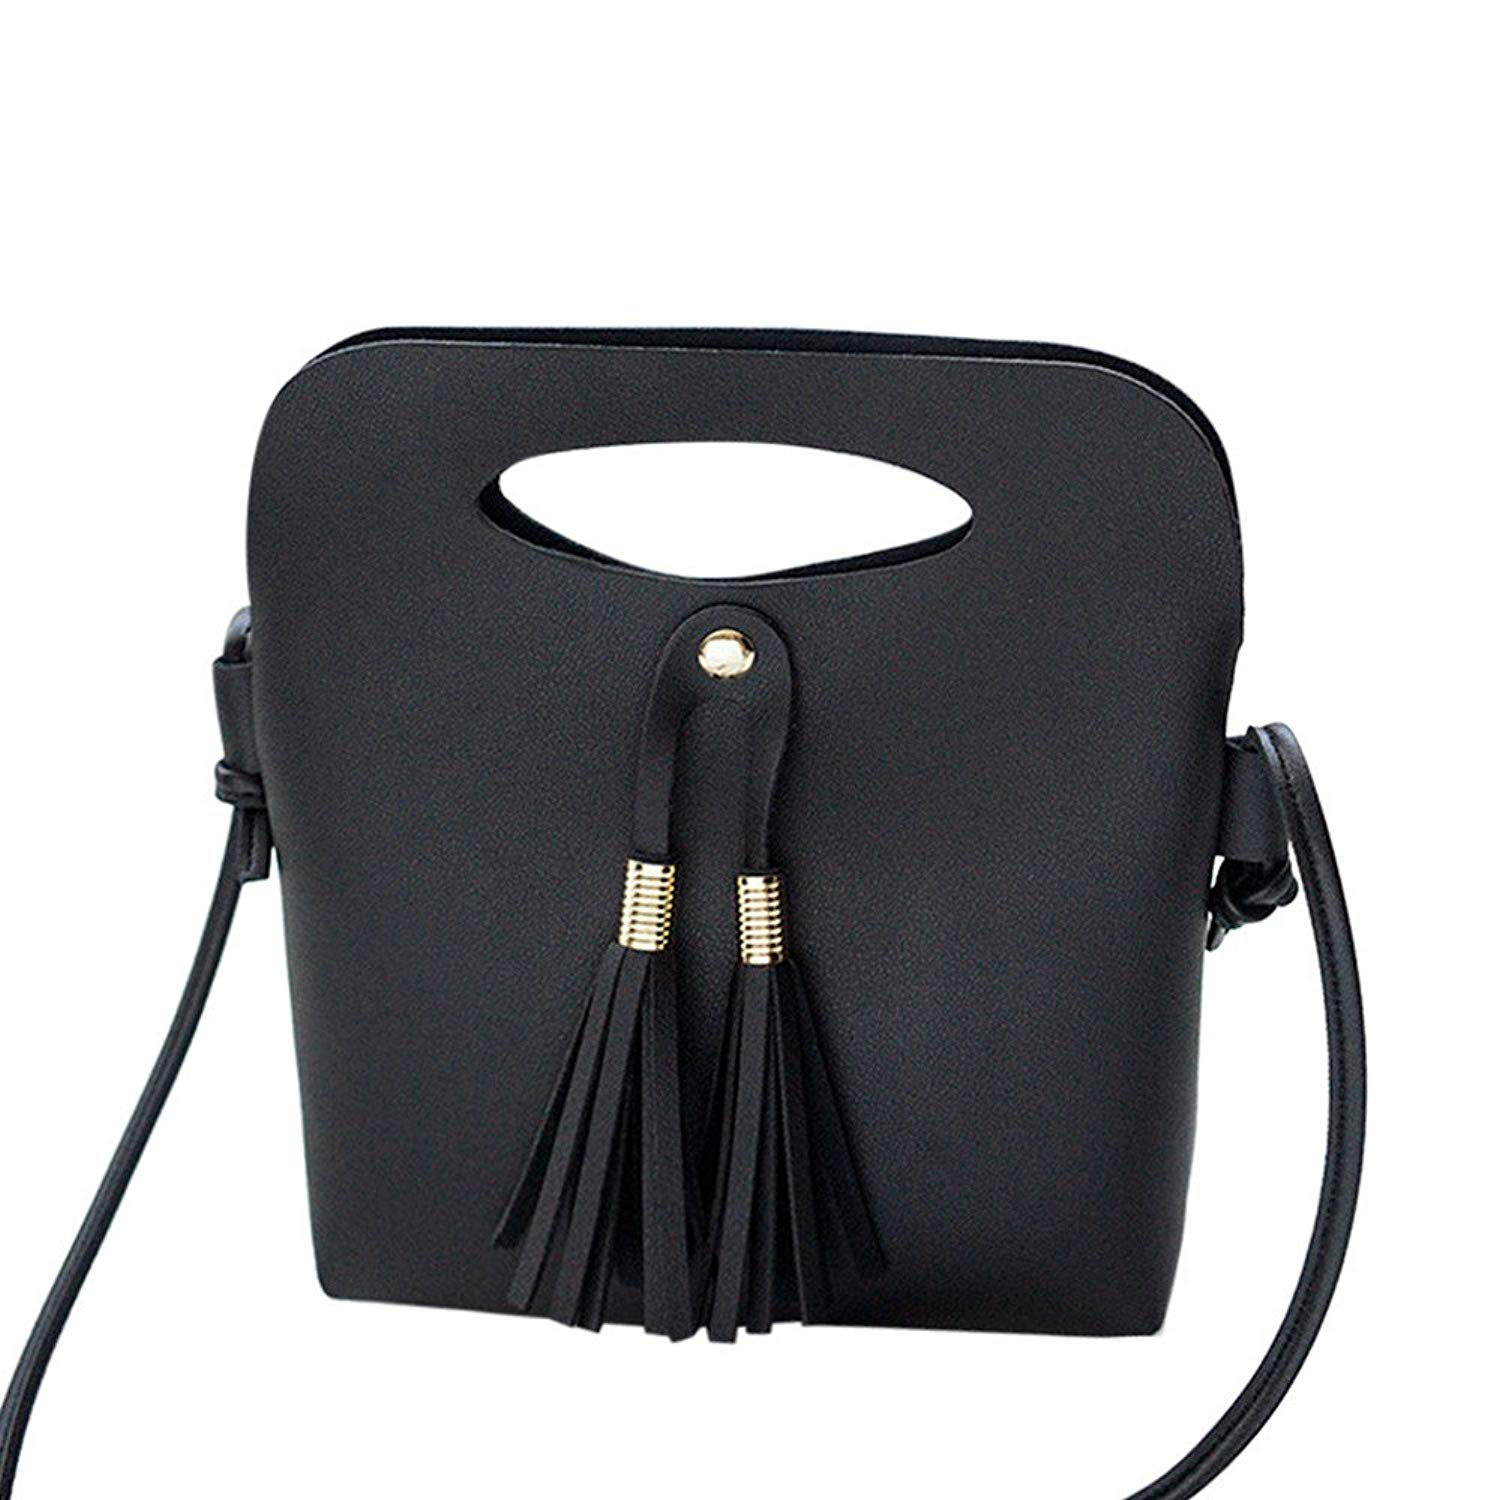 COOKI Womens Purses and Handbags Ladies Tassels Fashion PU Leather  Crossbody Handbags Designer Satchel Tote Bag a79008d93a